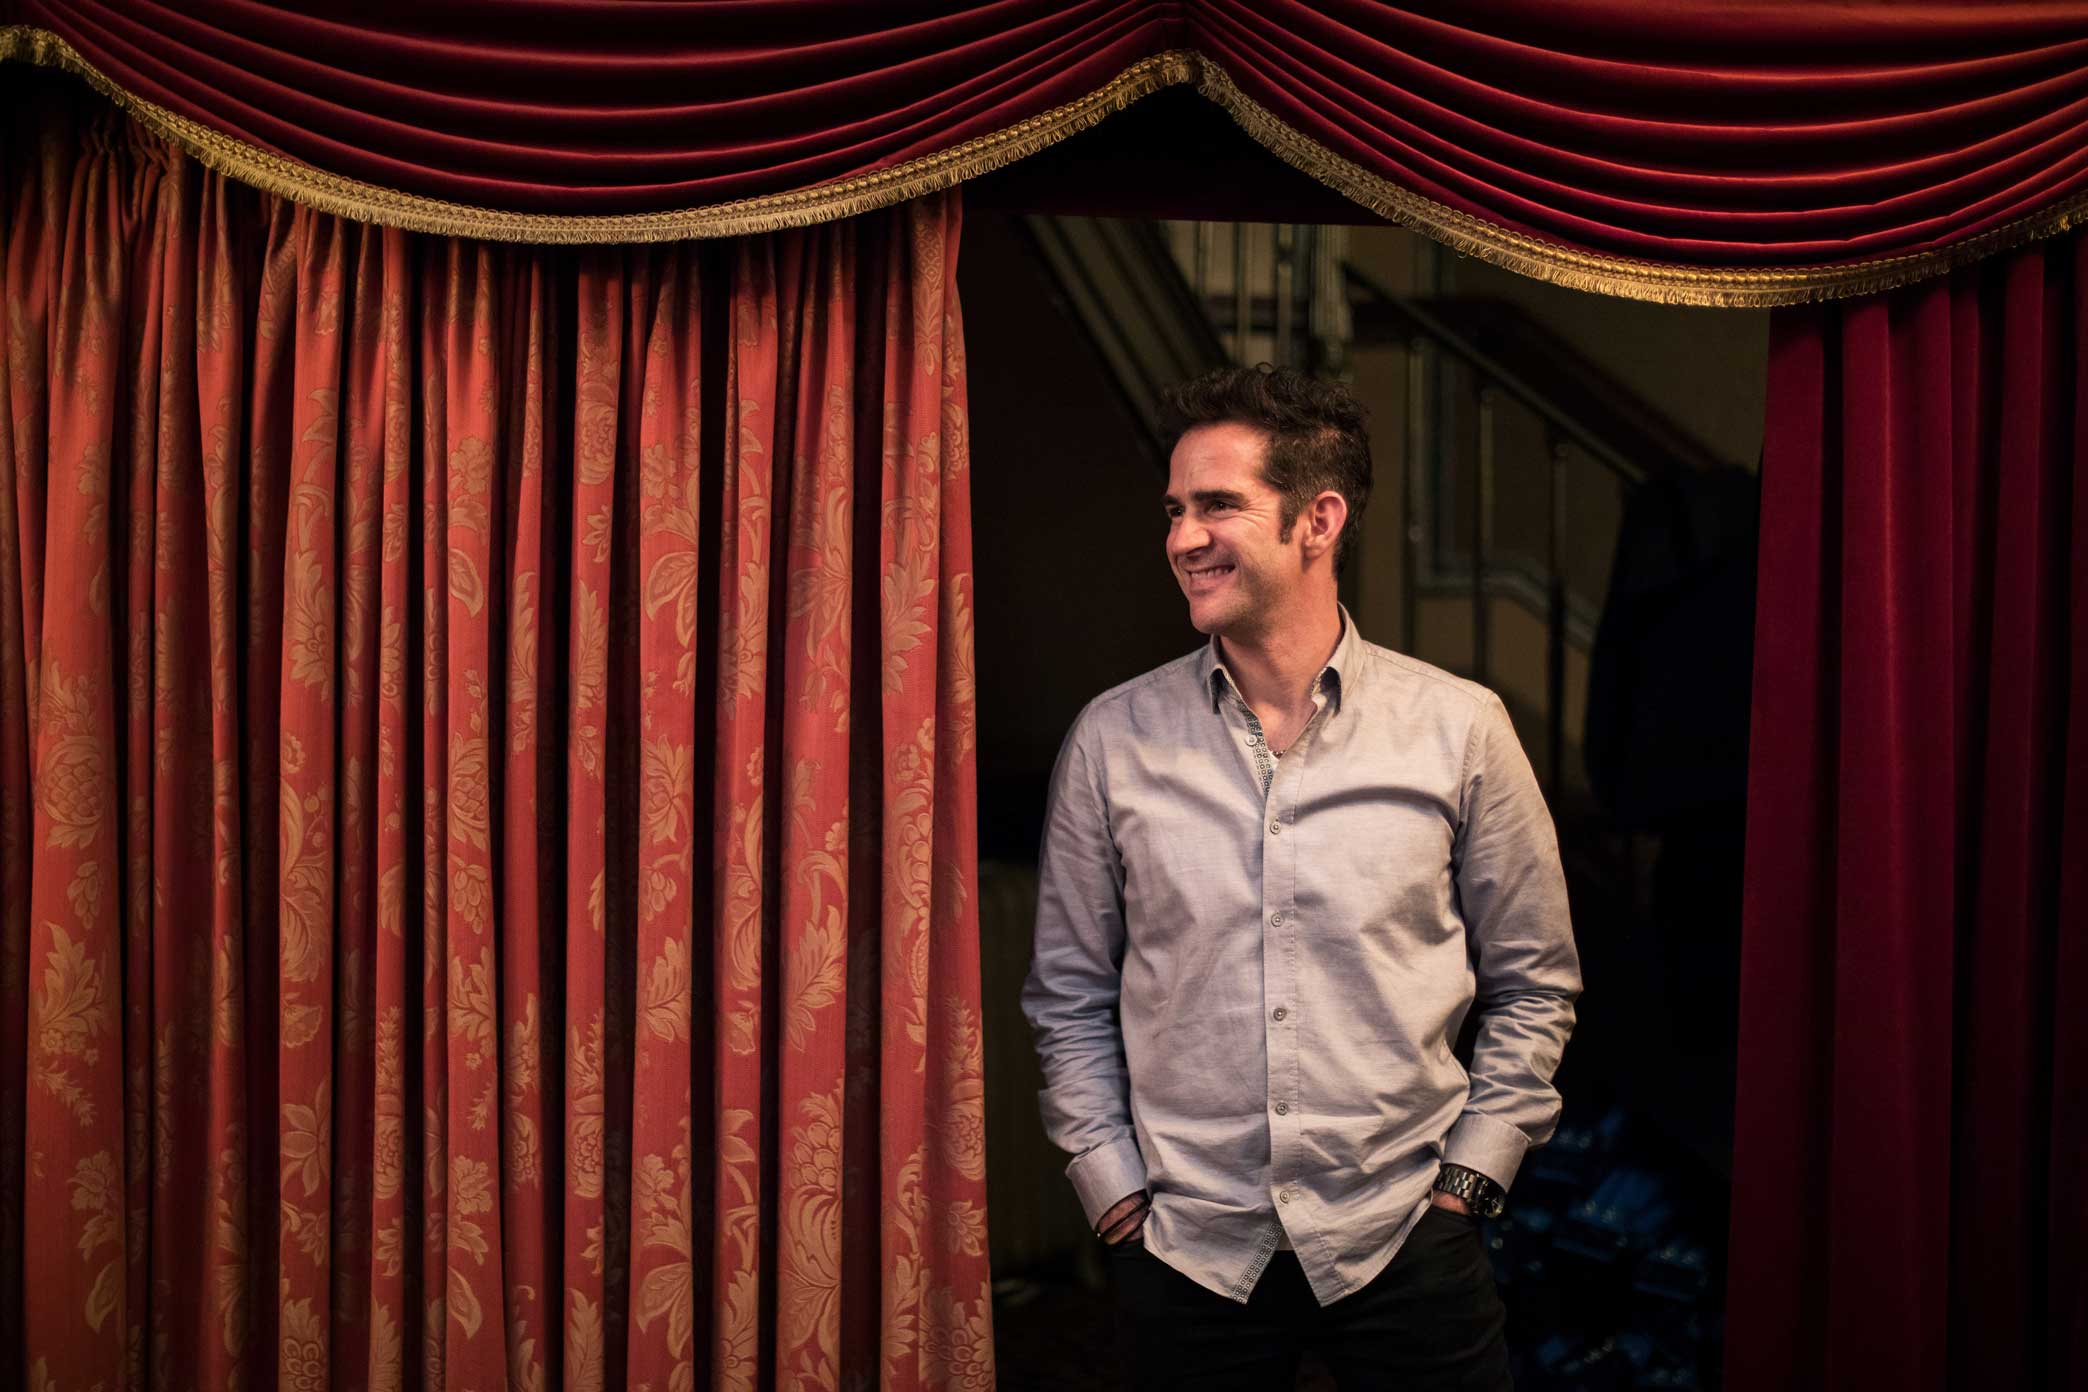 Mr. Blankenbuehler at the Jacobs Theater.  5:03 p.m., Mr. Blankenbuehler was sitting in the house, looking exhausted but smiling. He said he was satisfied that the show was in good shape.